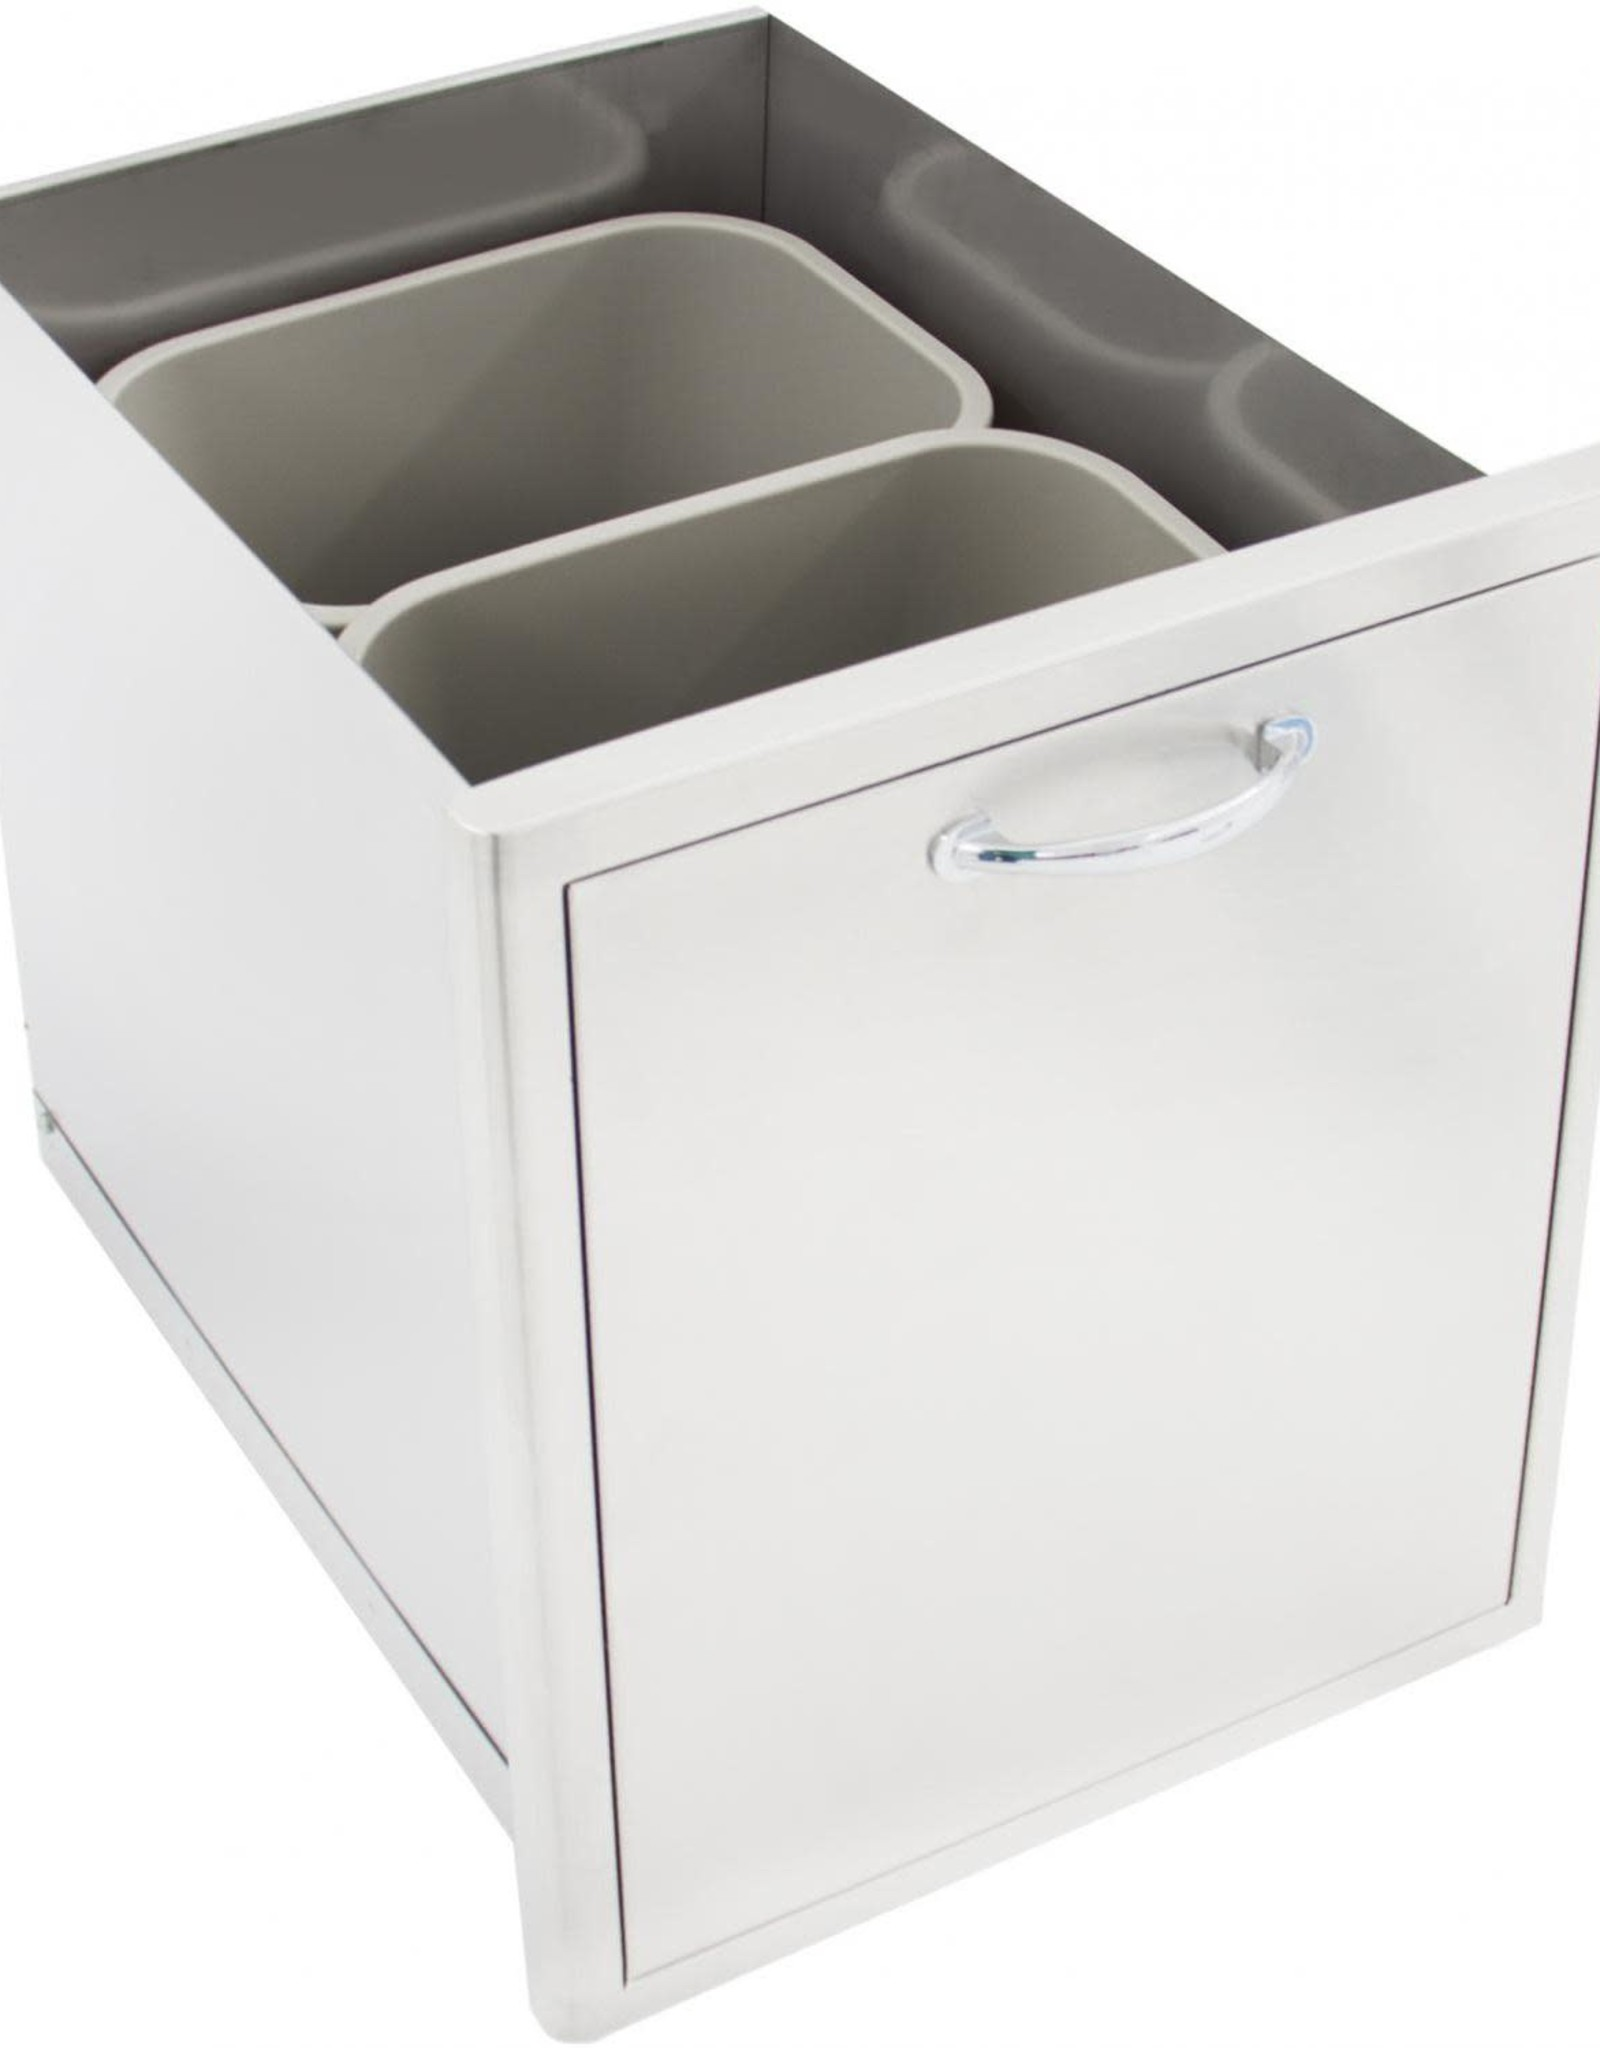 Blaze Outdoor Products Blaze Roll-Out Double Trash Recycle Drawer BLZ-TREC-DRW